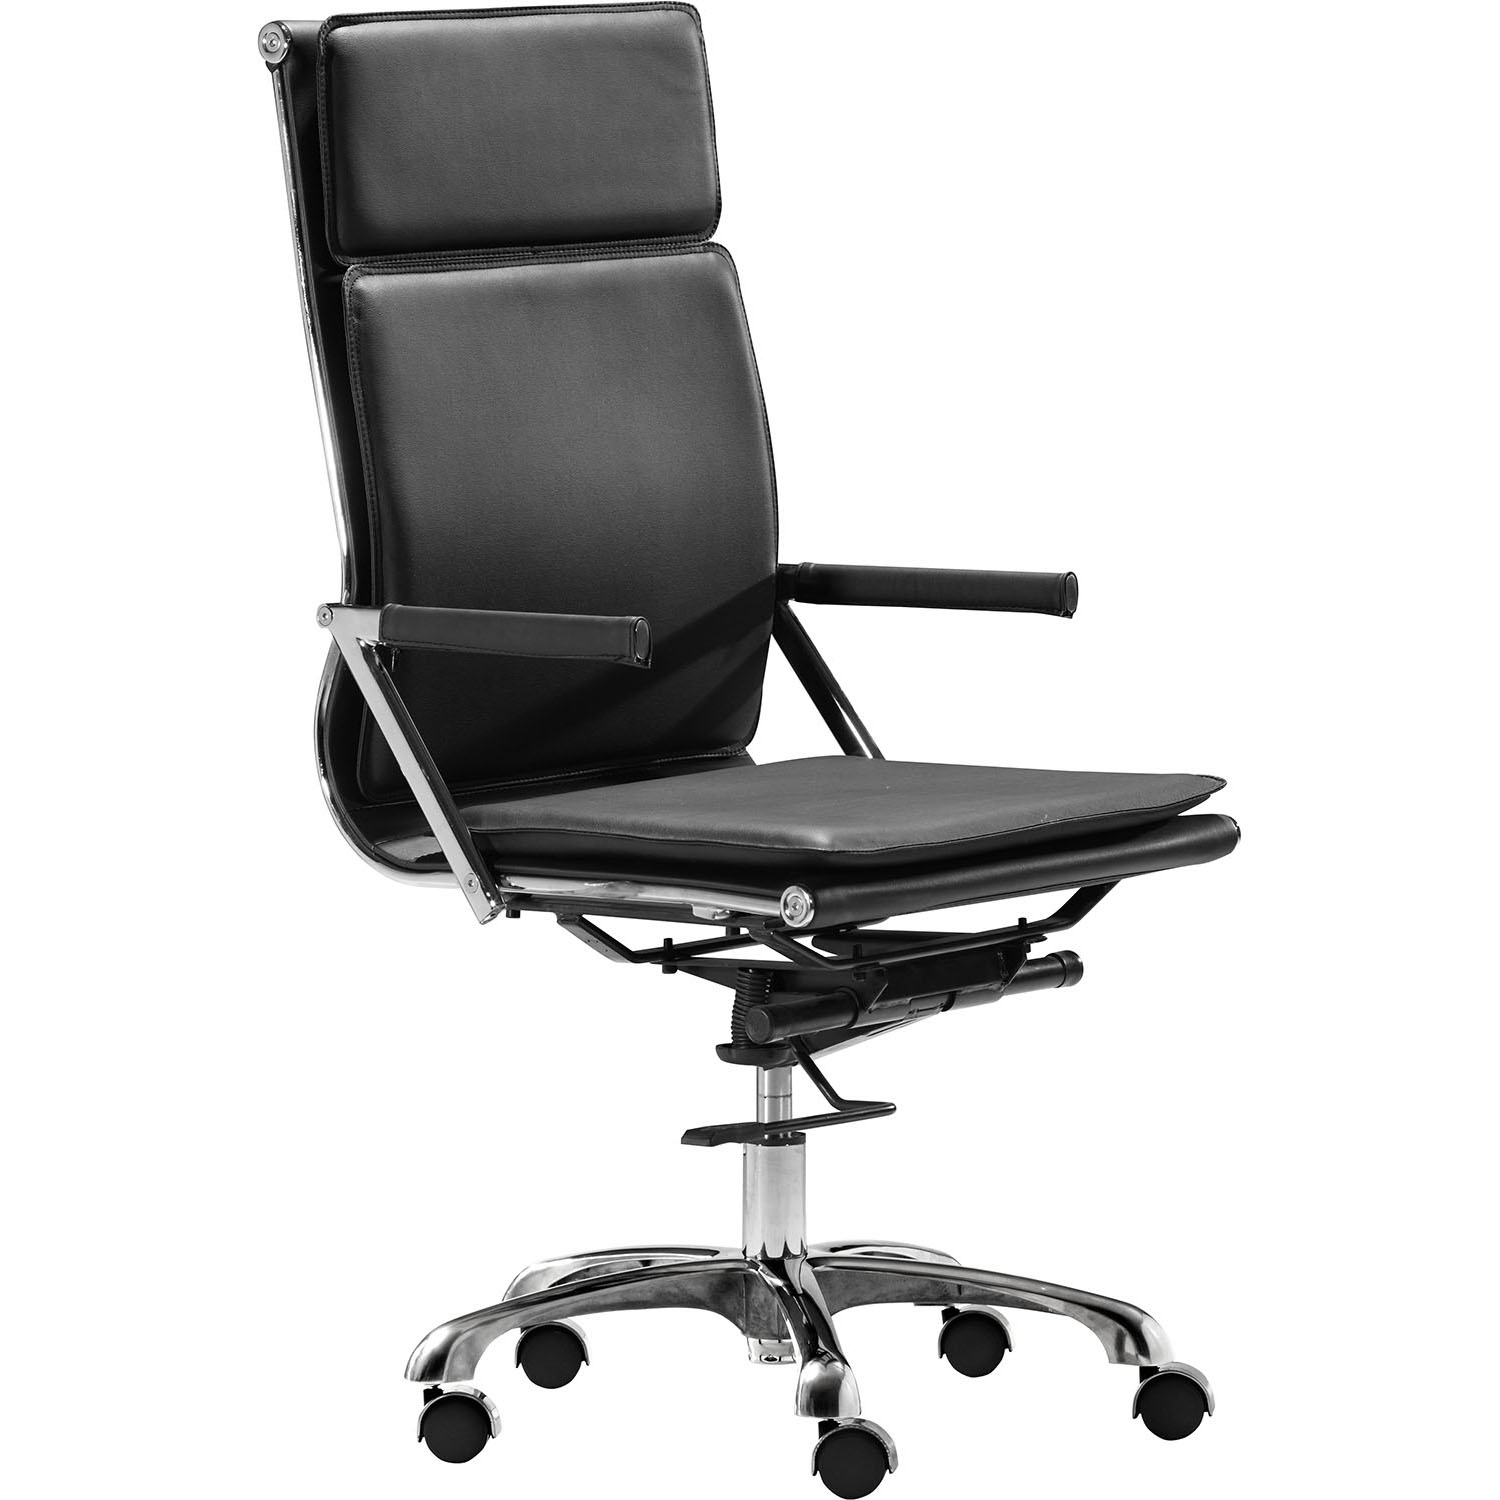 Lider Plus High Back Adjustable Rolling Office Armchair 215231, 215232